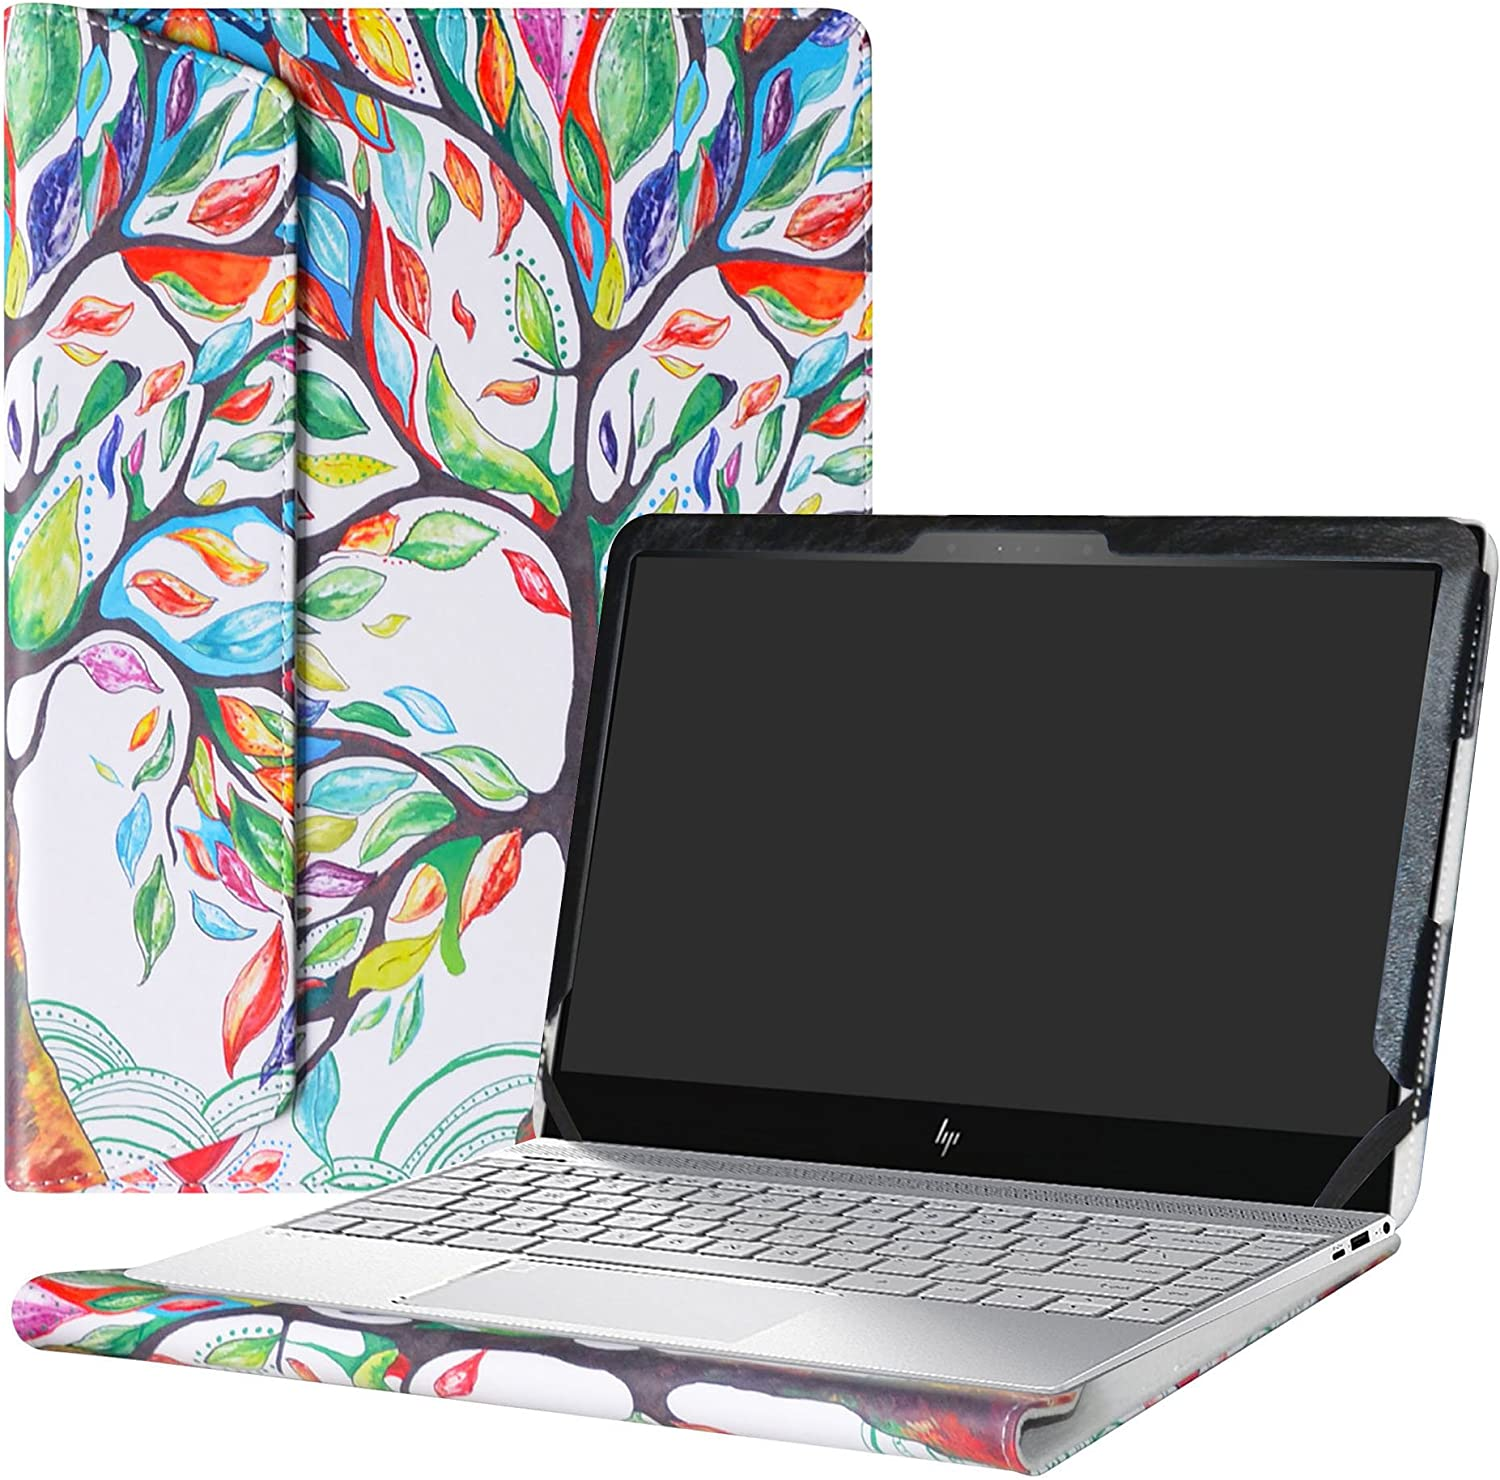 """Alapmk Protective Case Cover for 13.3"""" HP Envy 13 13-adXXX Series (13-ad000 to 13-ad999,Such as 13-ad120nr 13-ad173cl,Only fit 13-adXXX Series,Not fit 13-ahXXX/13-abXXX) Laptop,Love Tree"""